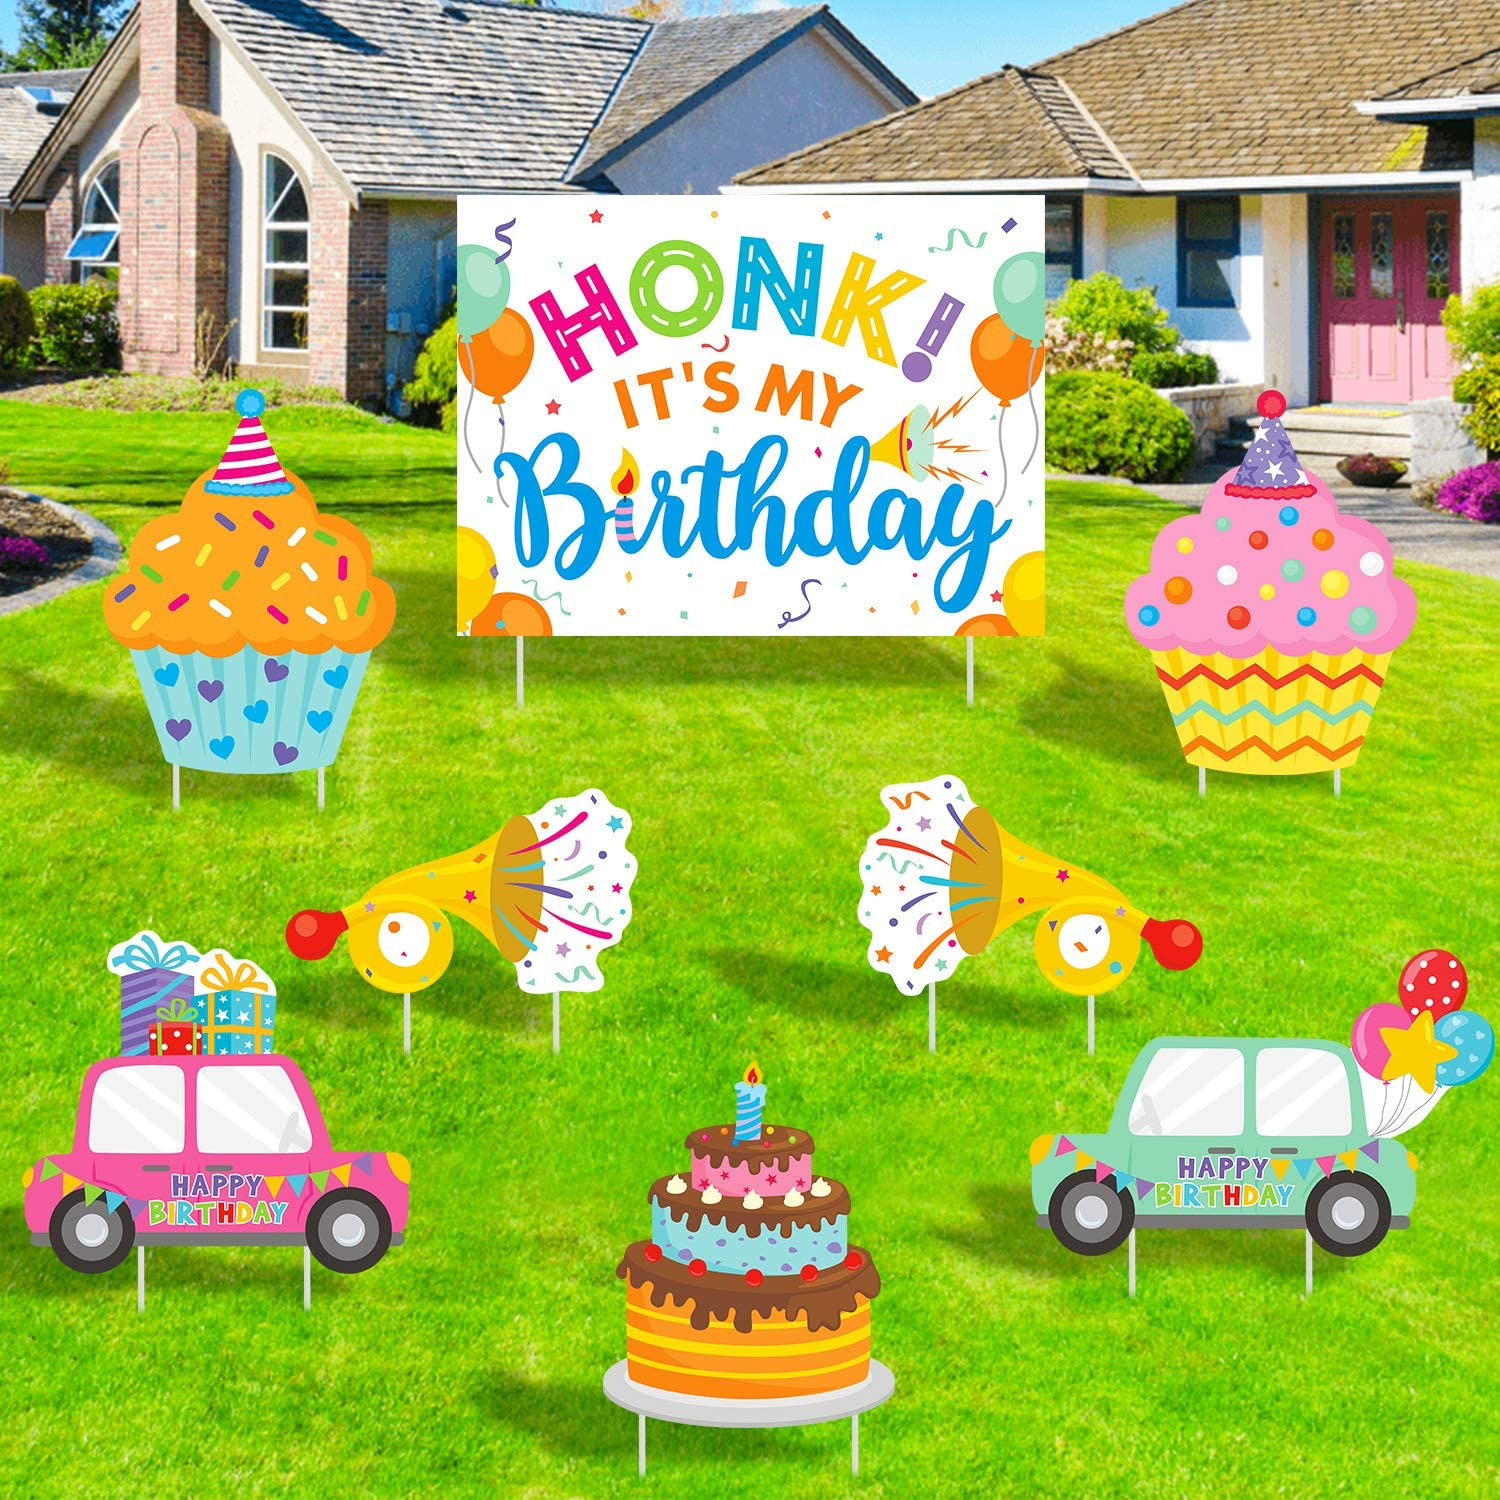 ADXCO 8 Pack Honk Its My Birthday Yard Sign Art Set Honk Its My Birthday Lawn Sign Honk Its My Birthday Large Signs Birthday Party Yard Signs with Stakes